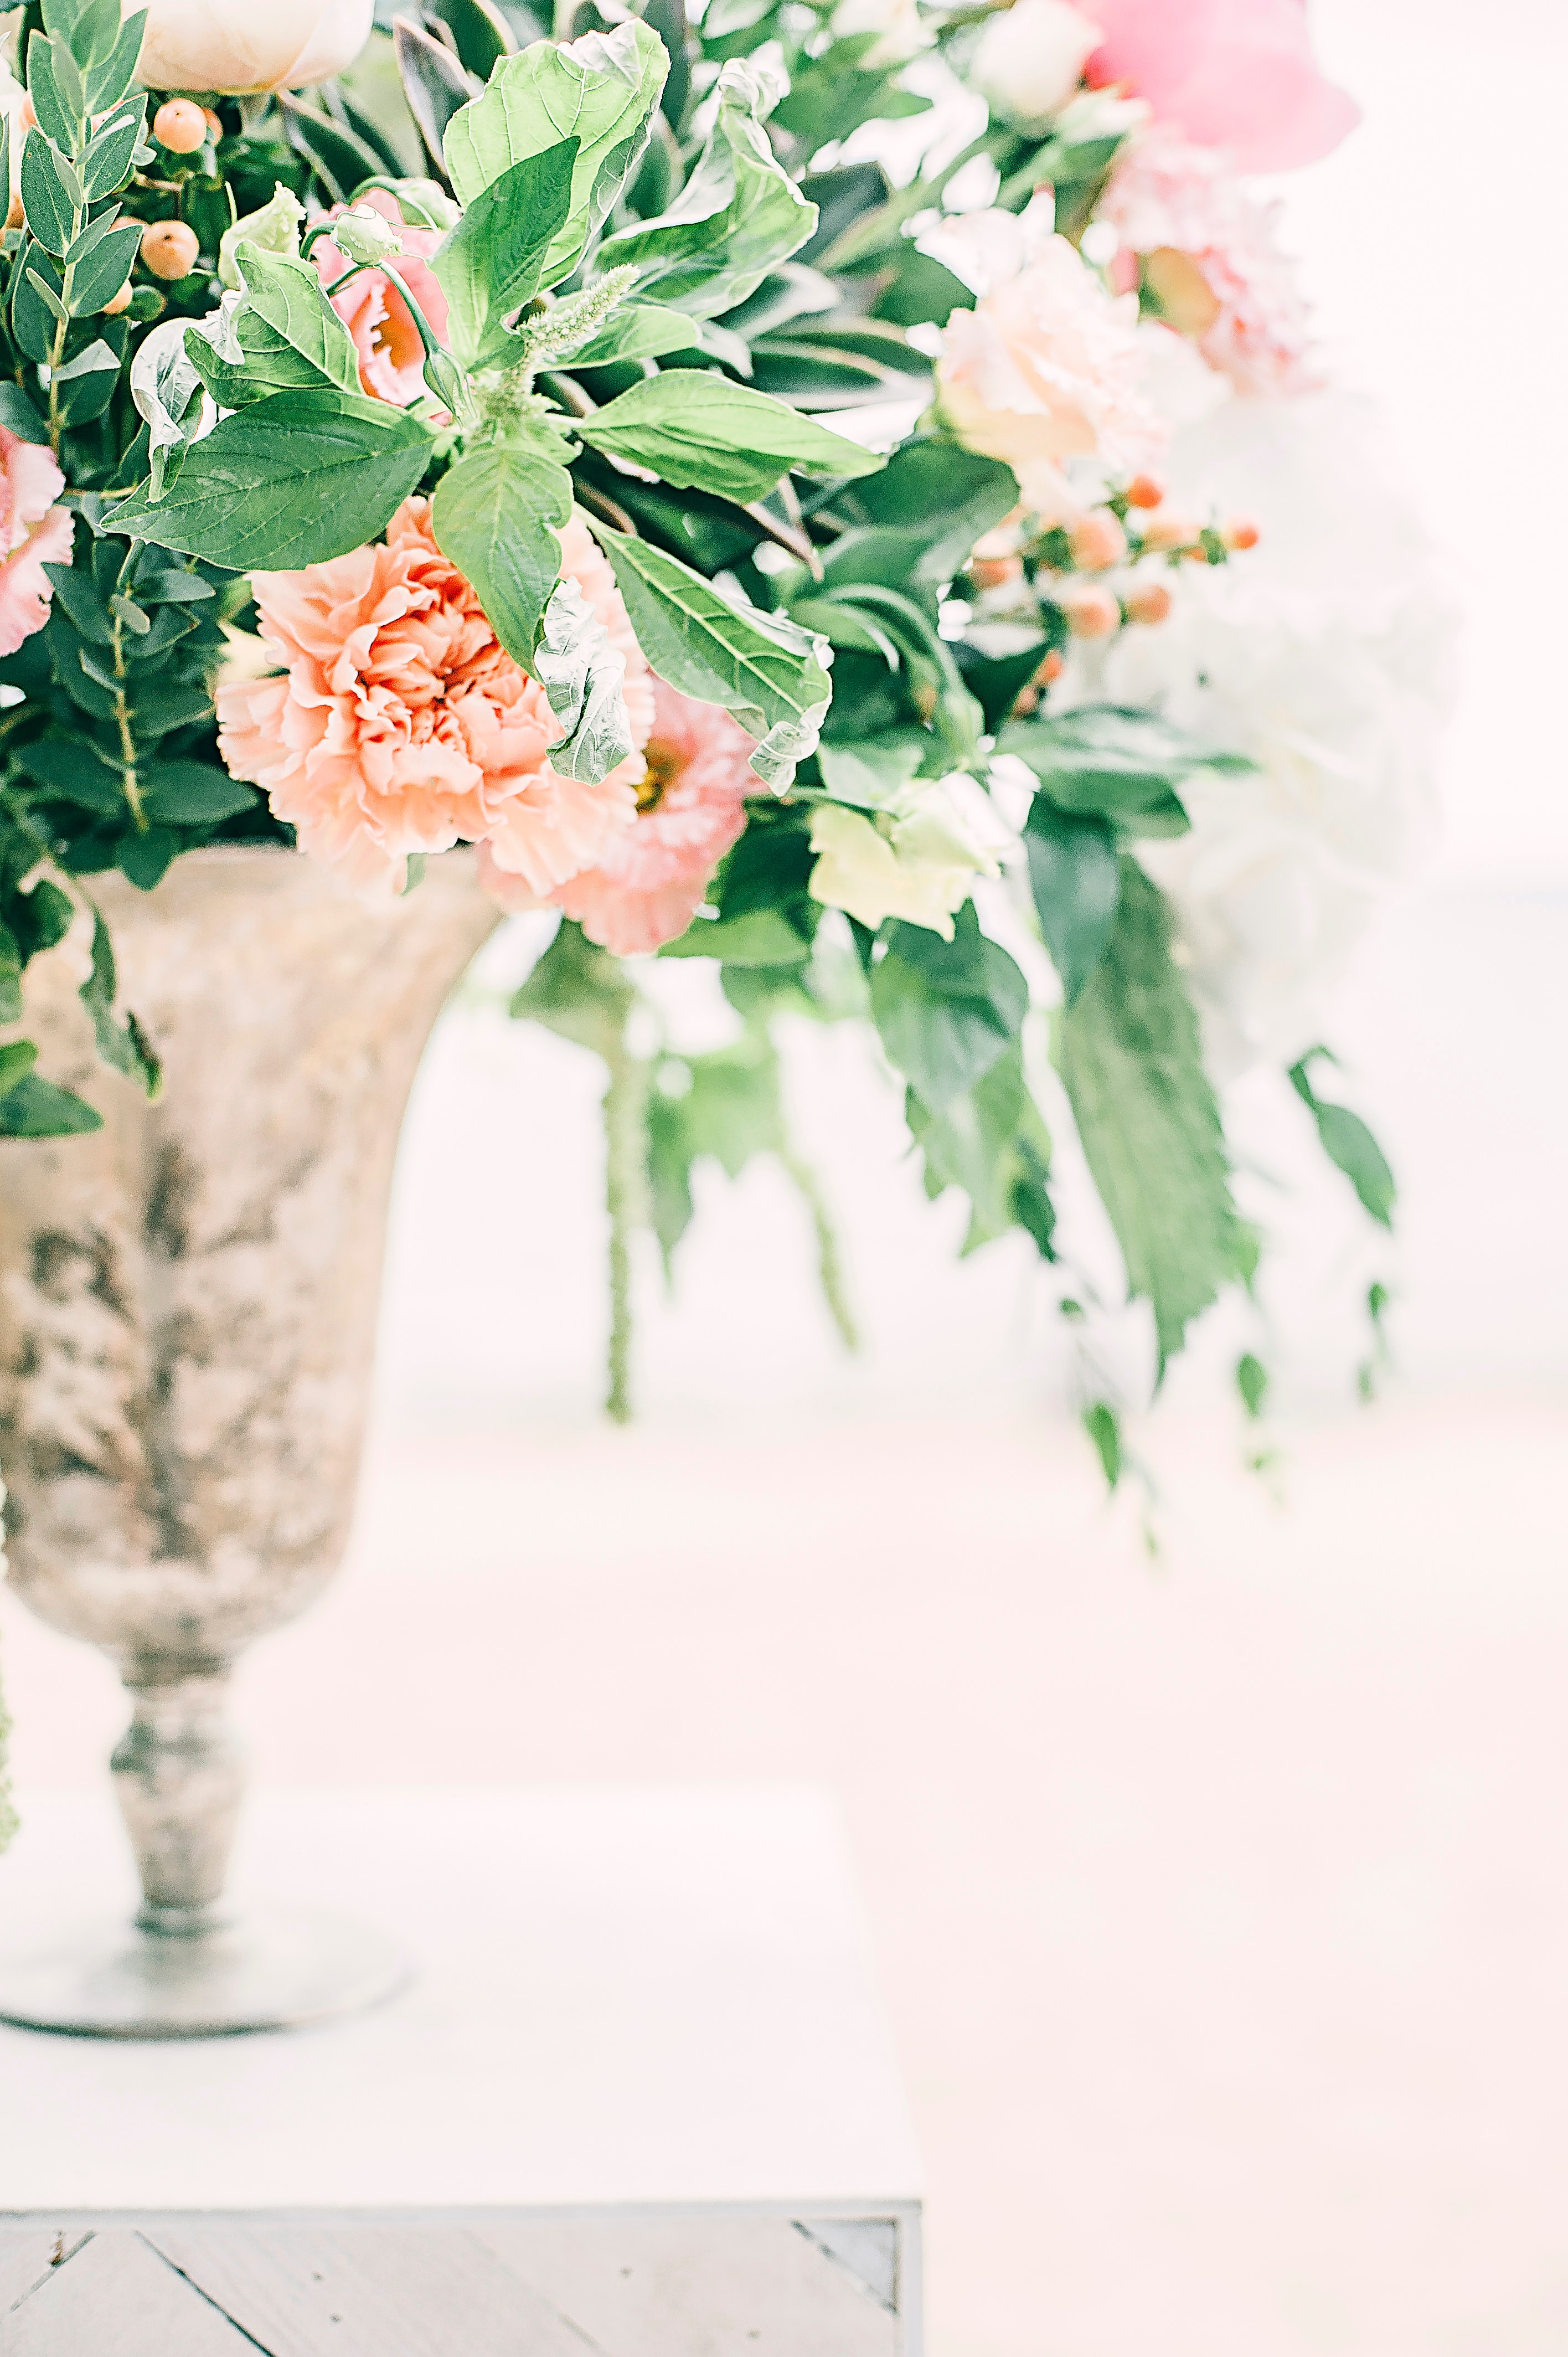 Consider Silk Flowers for Your wedding